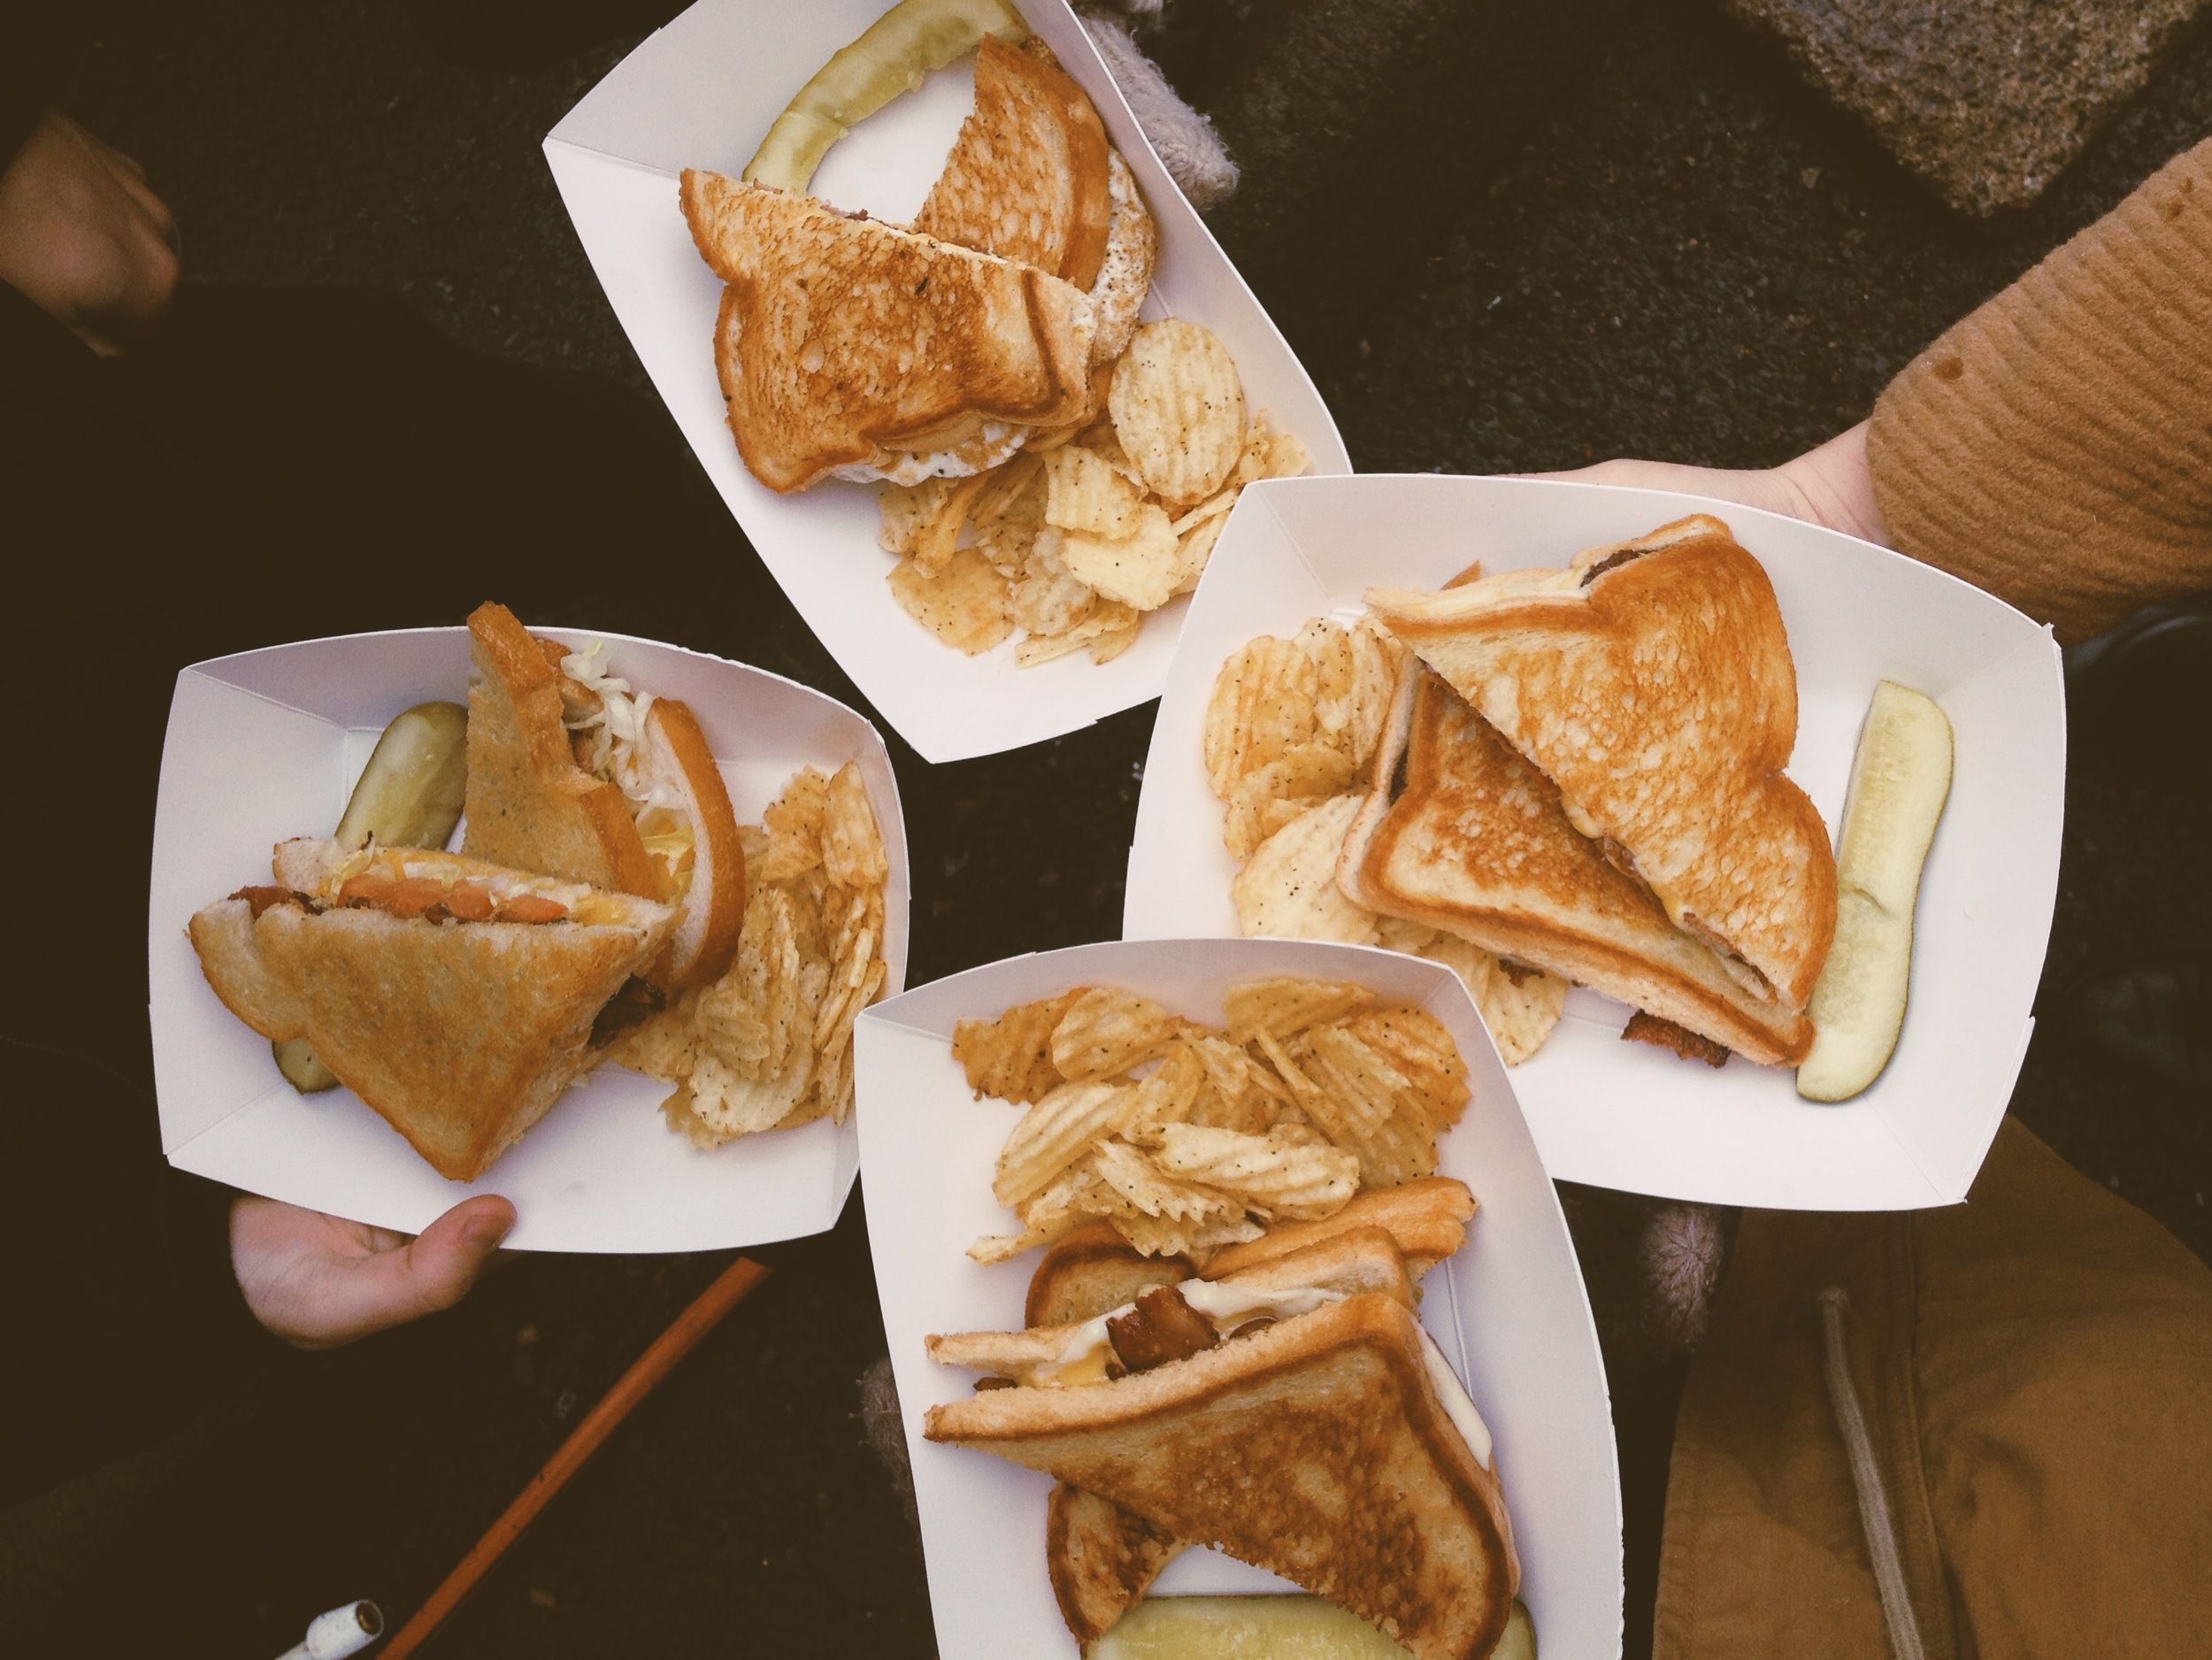 Portland food truck: Bacon grilled cheese.